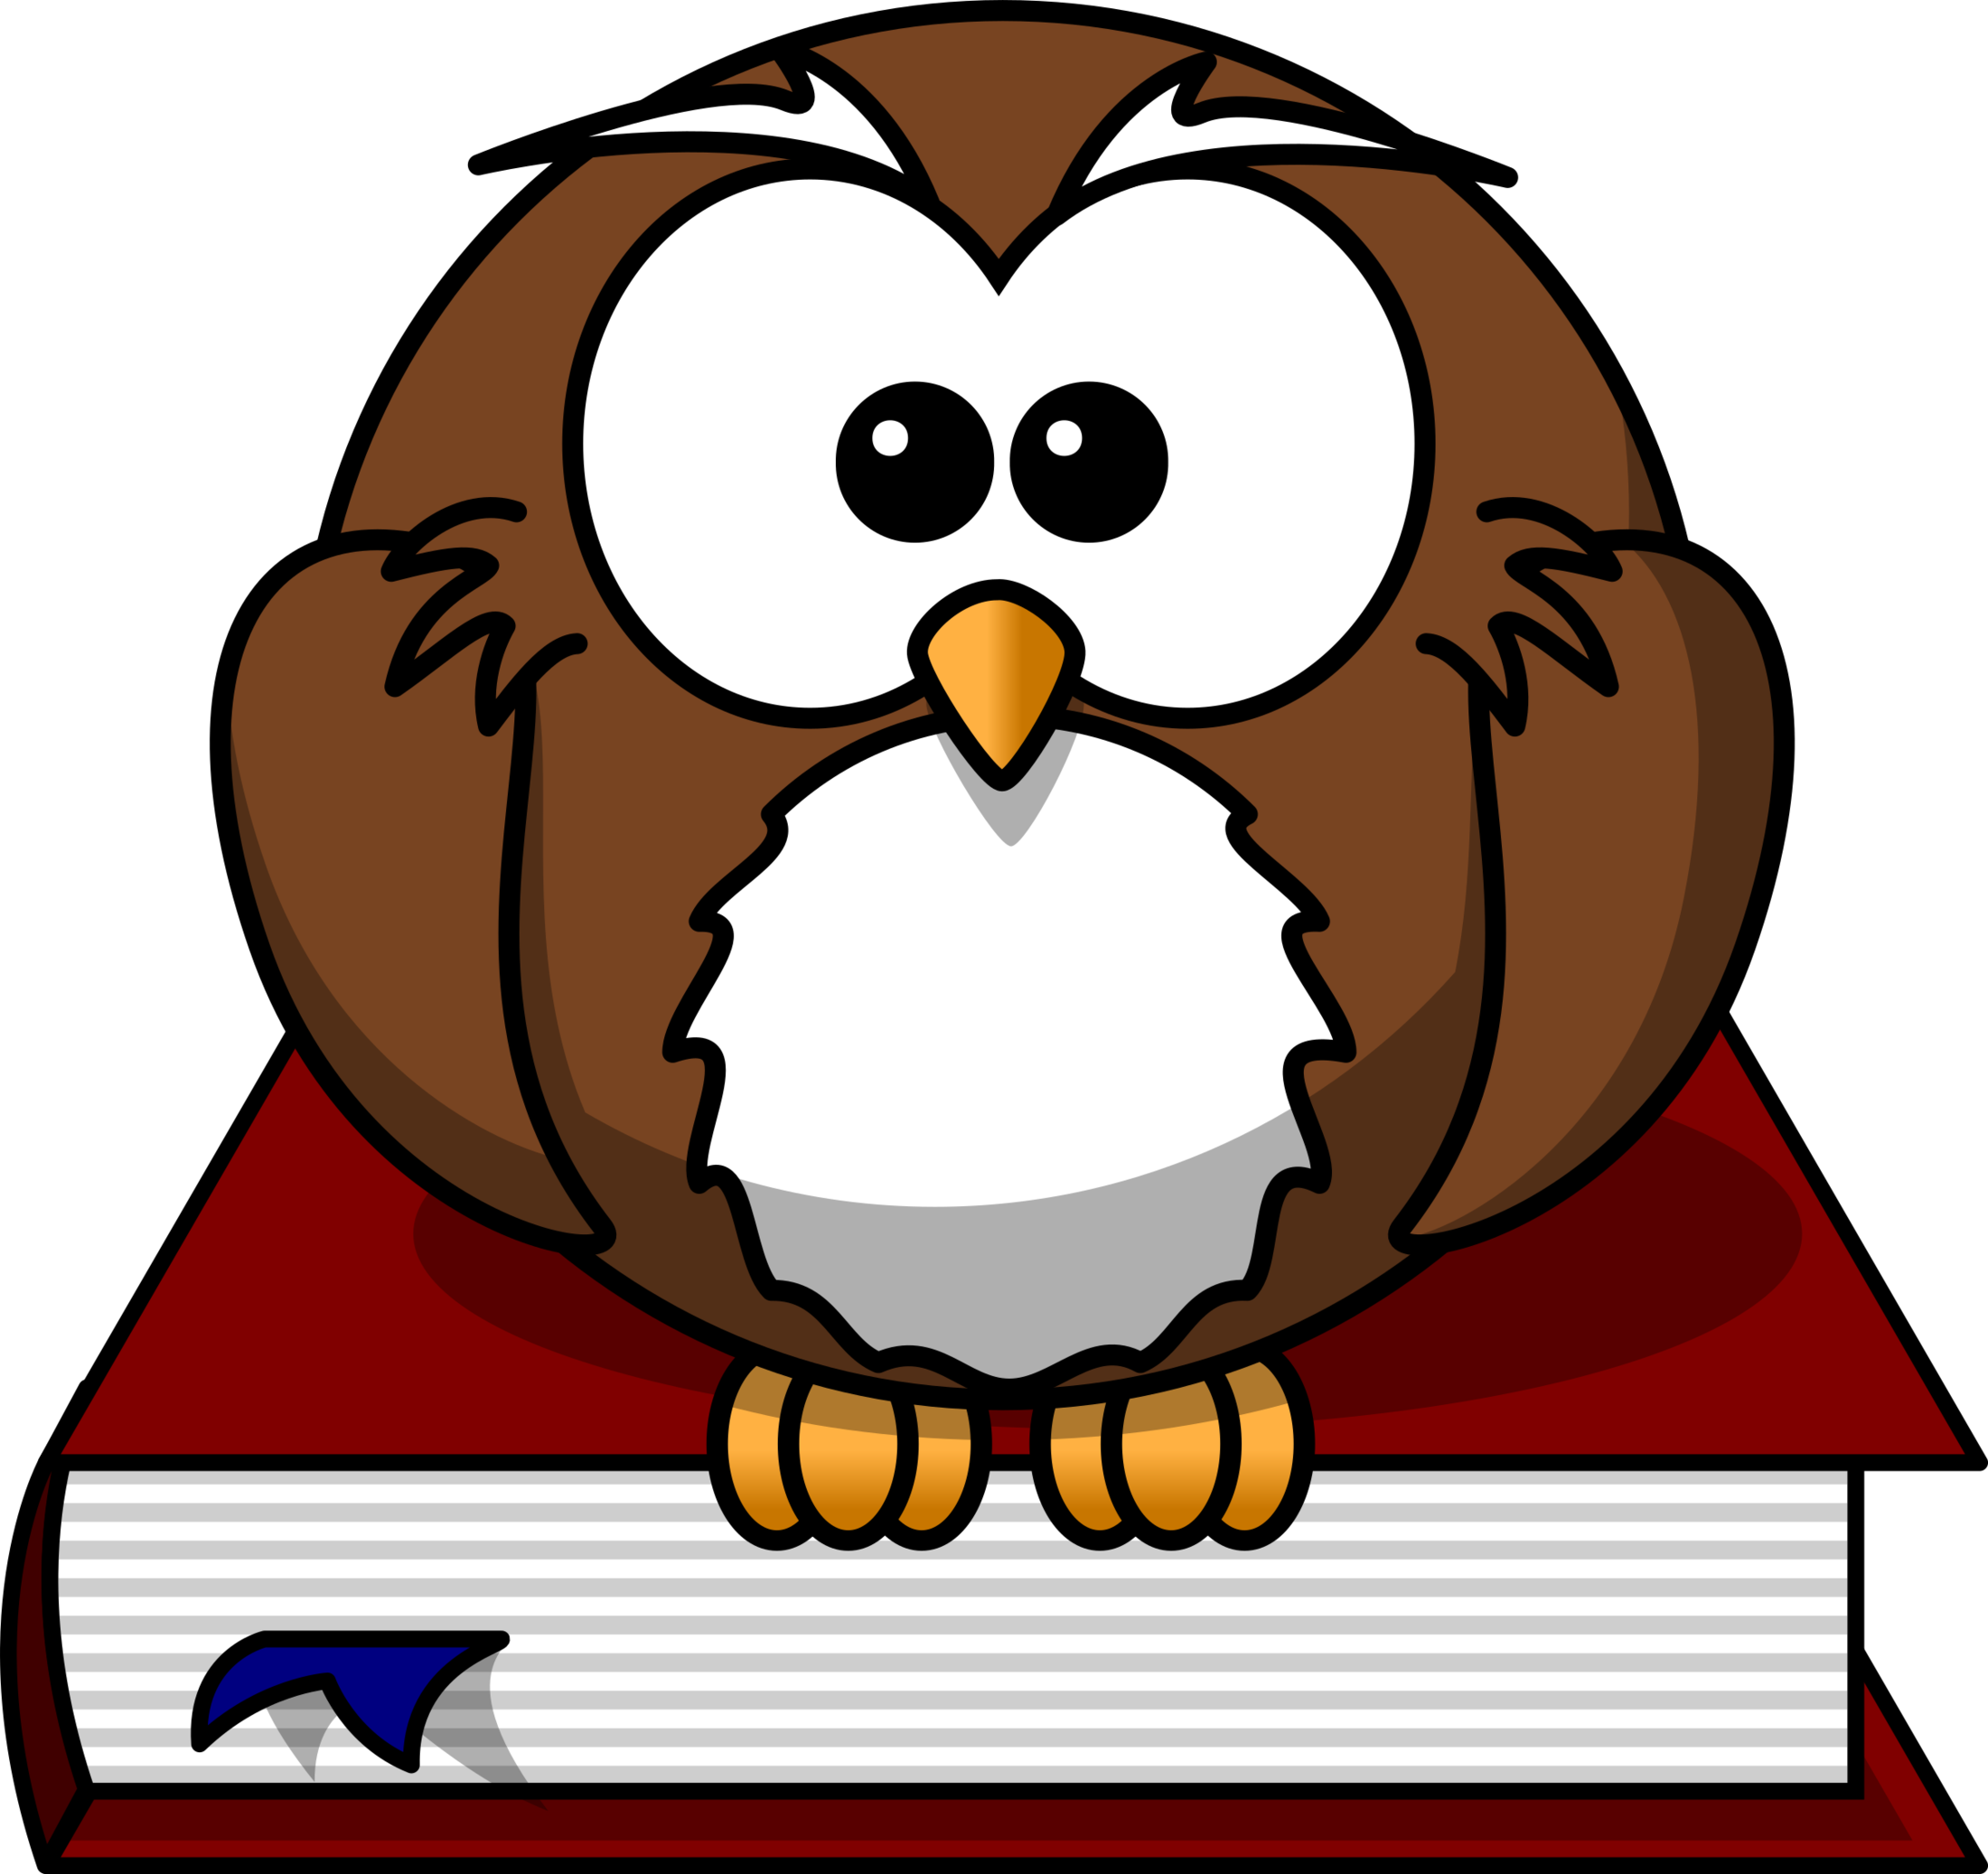 Owl sitting on a book.